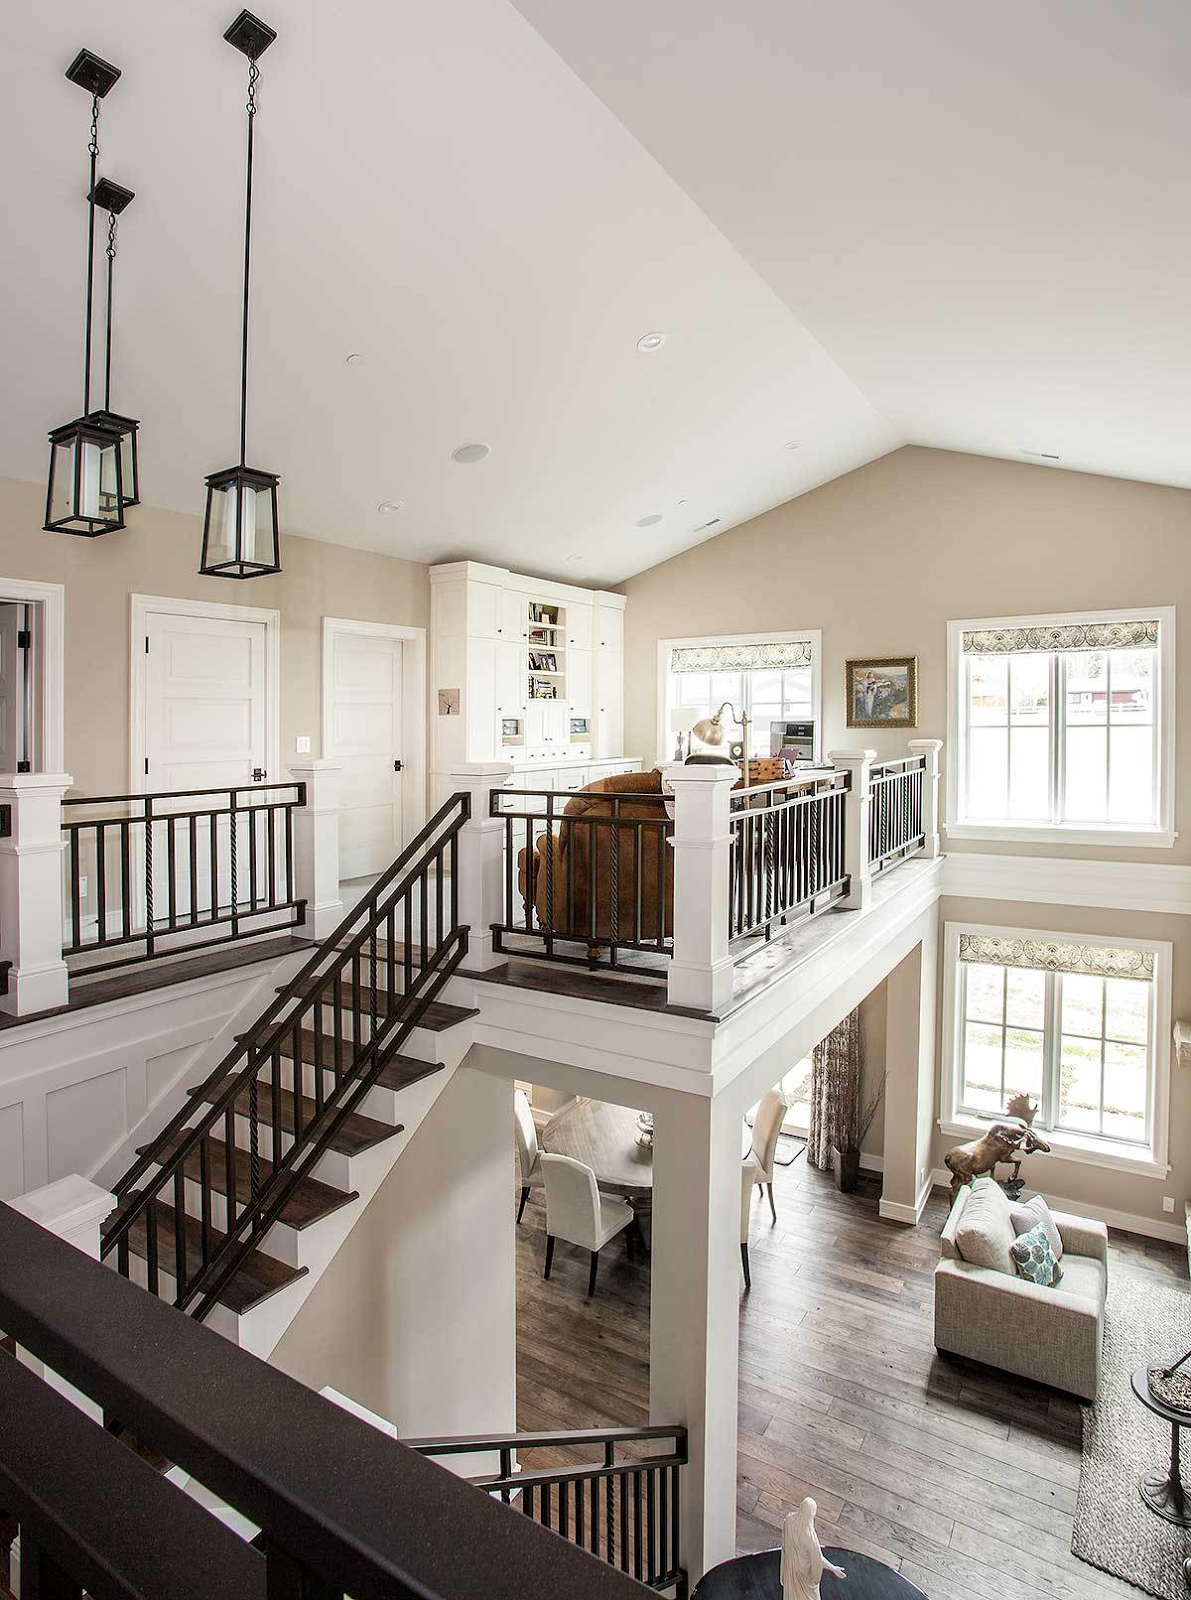 This Elegant Home Features A Stylish Staircase Leading To The Home